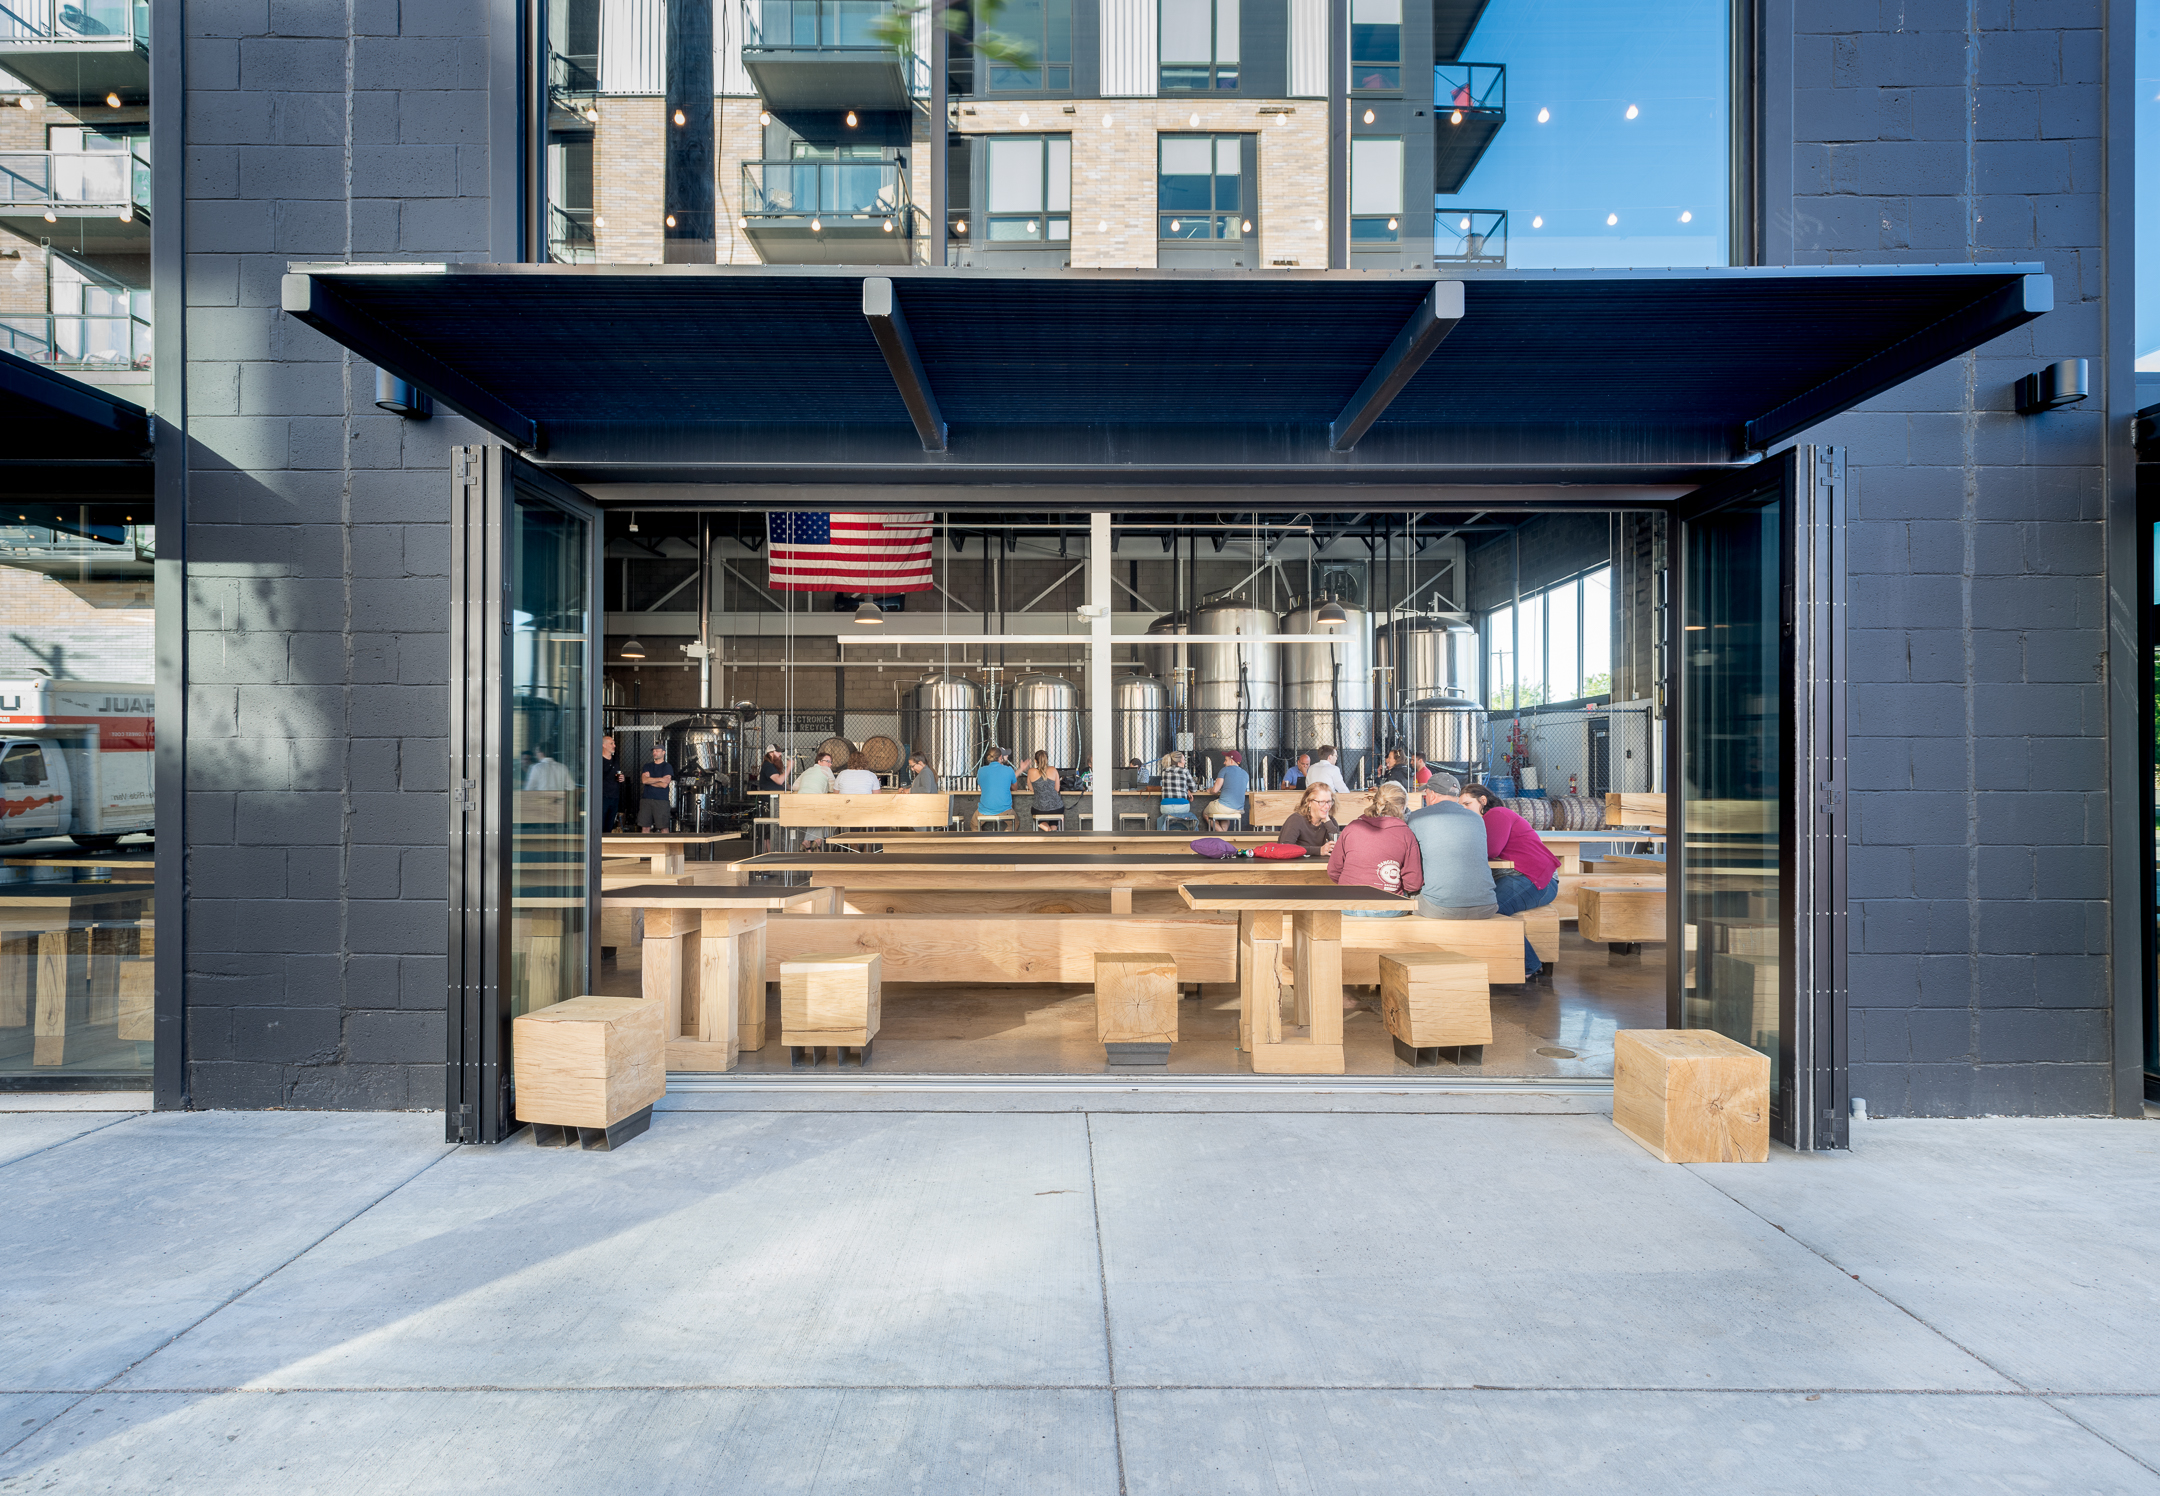 Open air seating area in brewery remodel by Christian Dean Architecture.